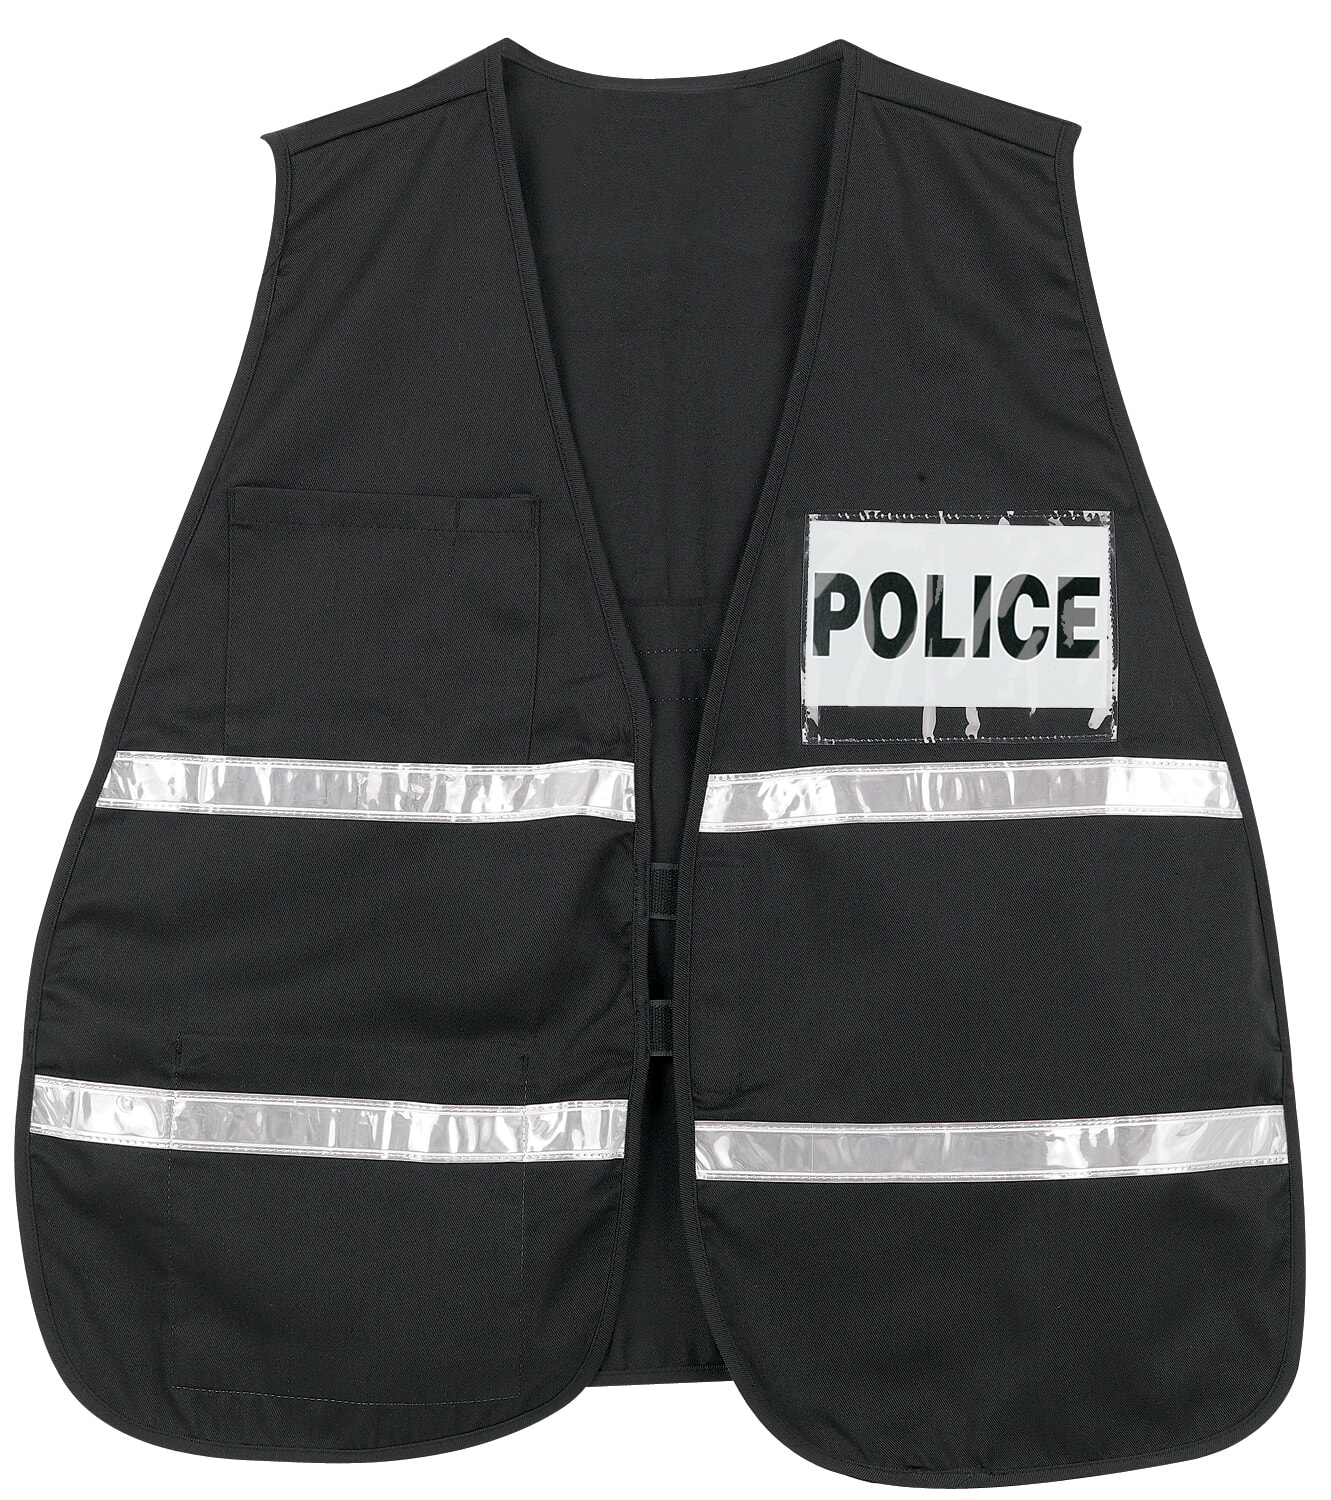 MCR River City ICV207 Incident Vest, Black, White Reflective Black